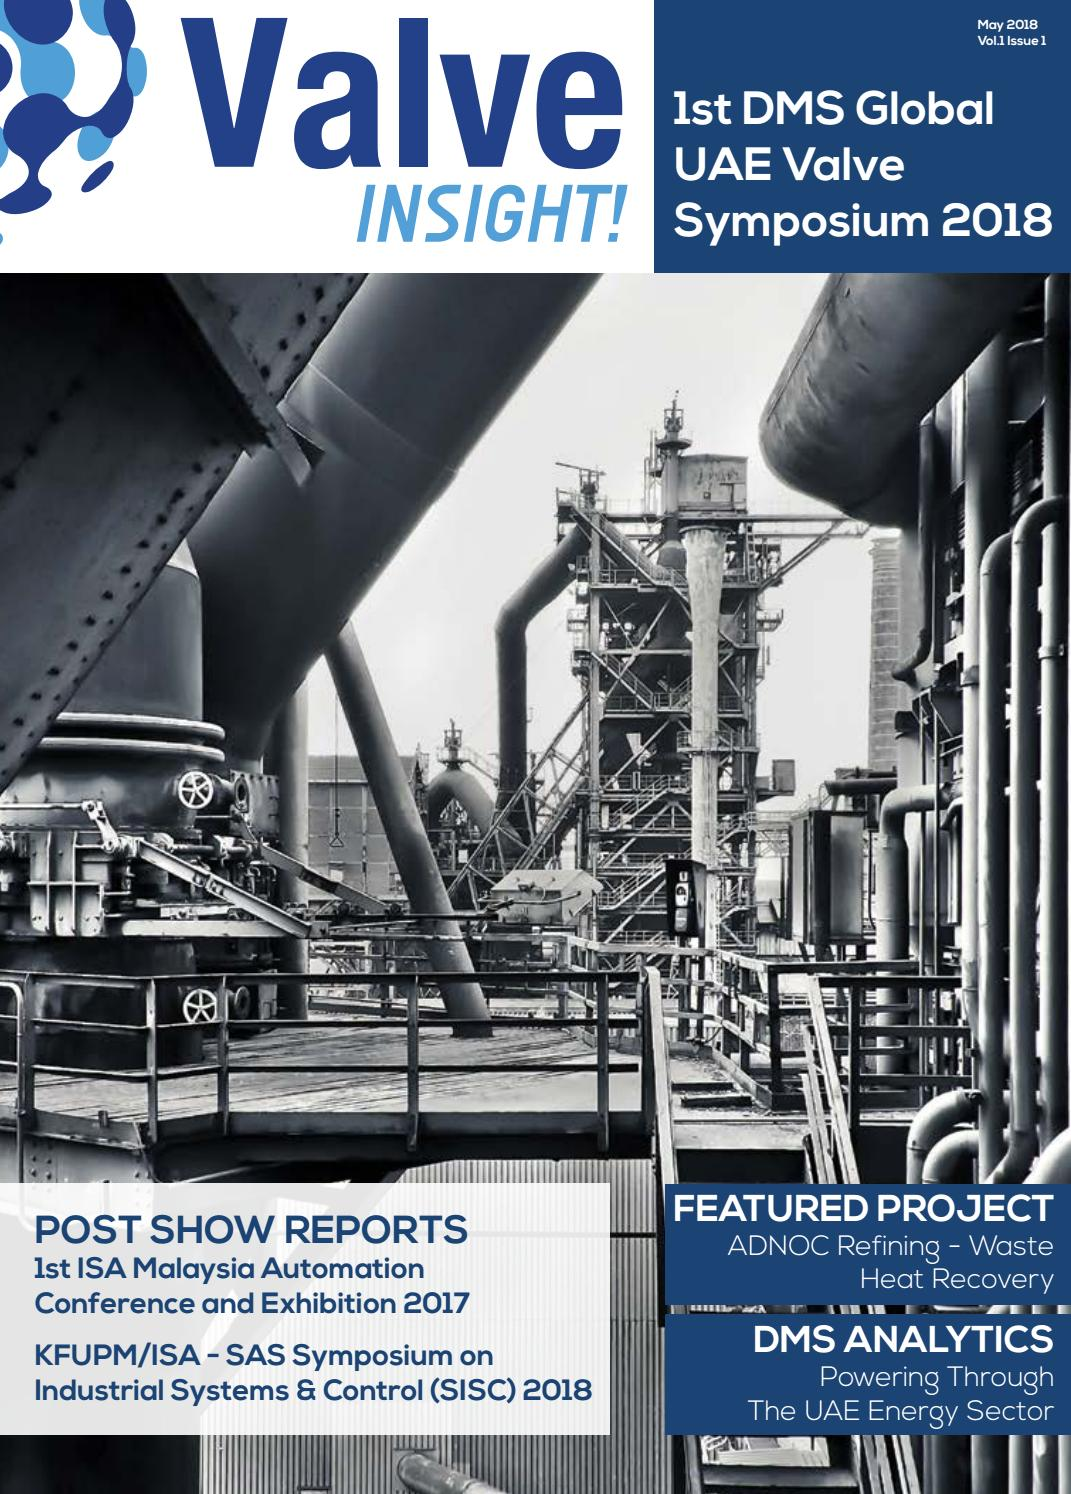 Valve INSIGHT! May 2018 by DMS Global - issuu